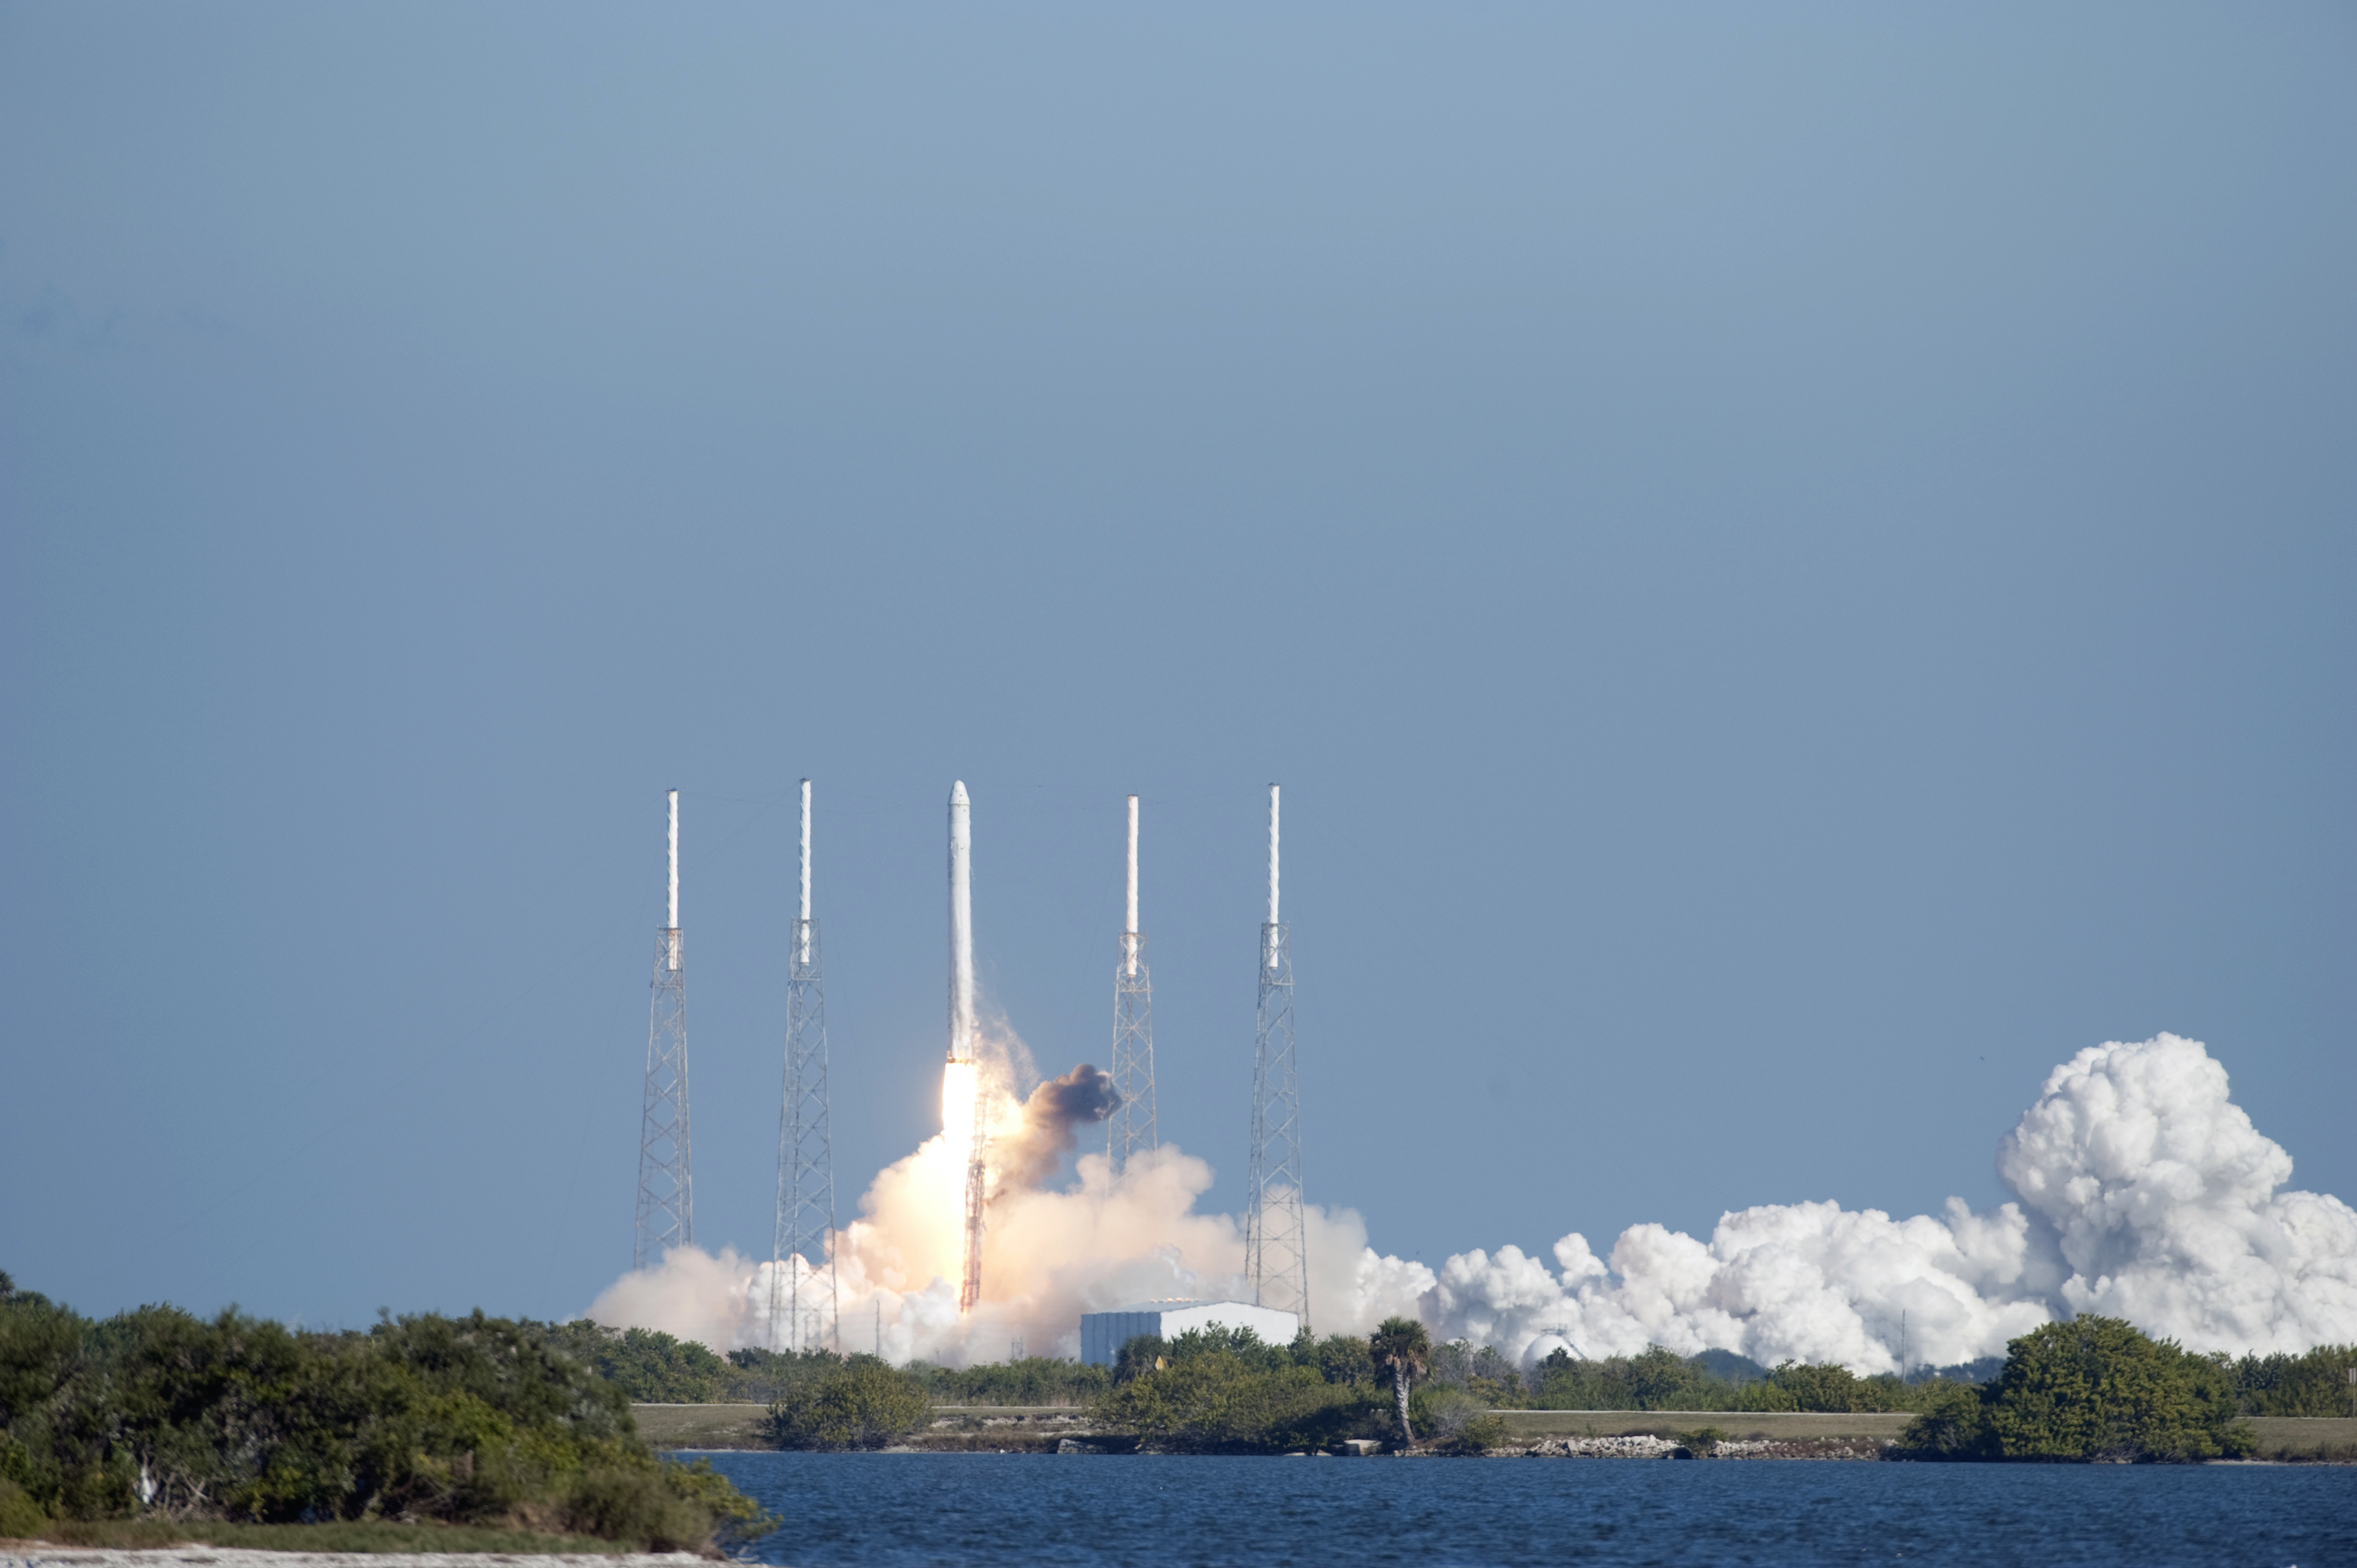 spacex dragon launch - HD3000×1996